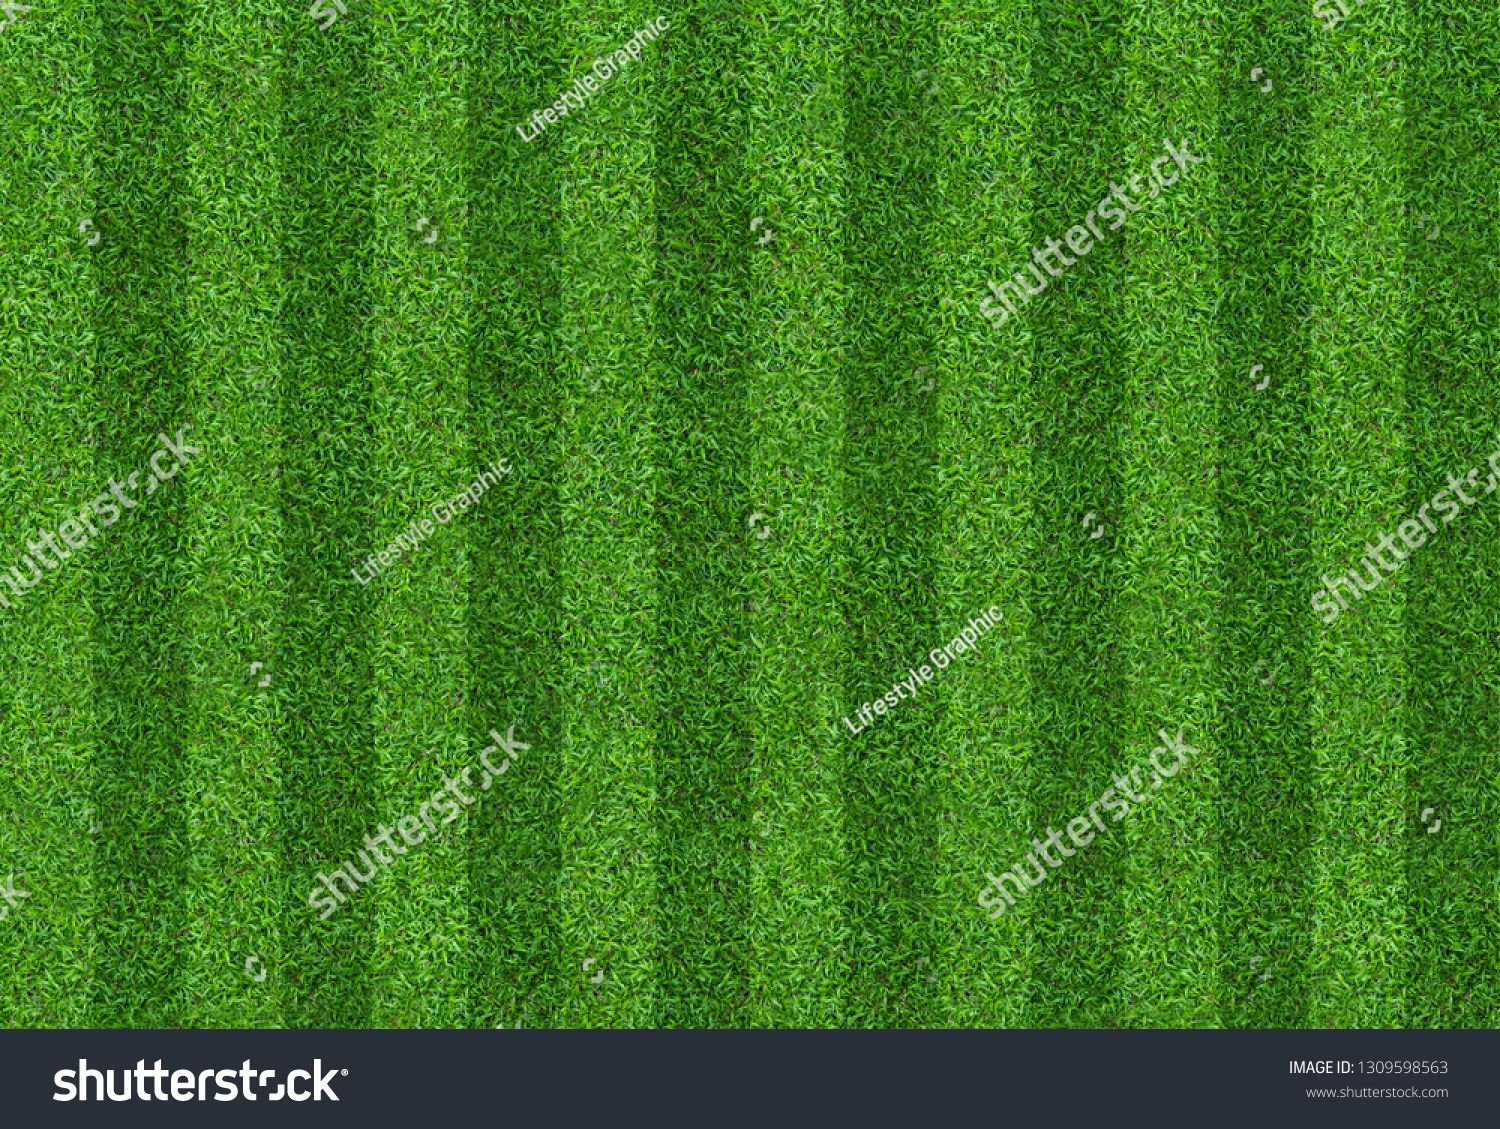 Green Grass Field Background For Soccer And Football Sports Green Lawn Pattern And Texture Background Close Up Image Ad Affiliate Background Grass Field